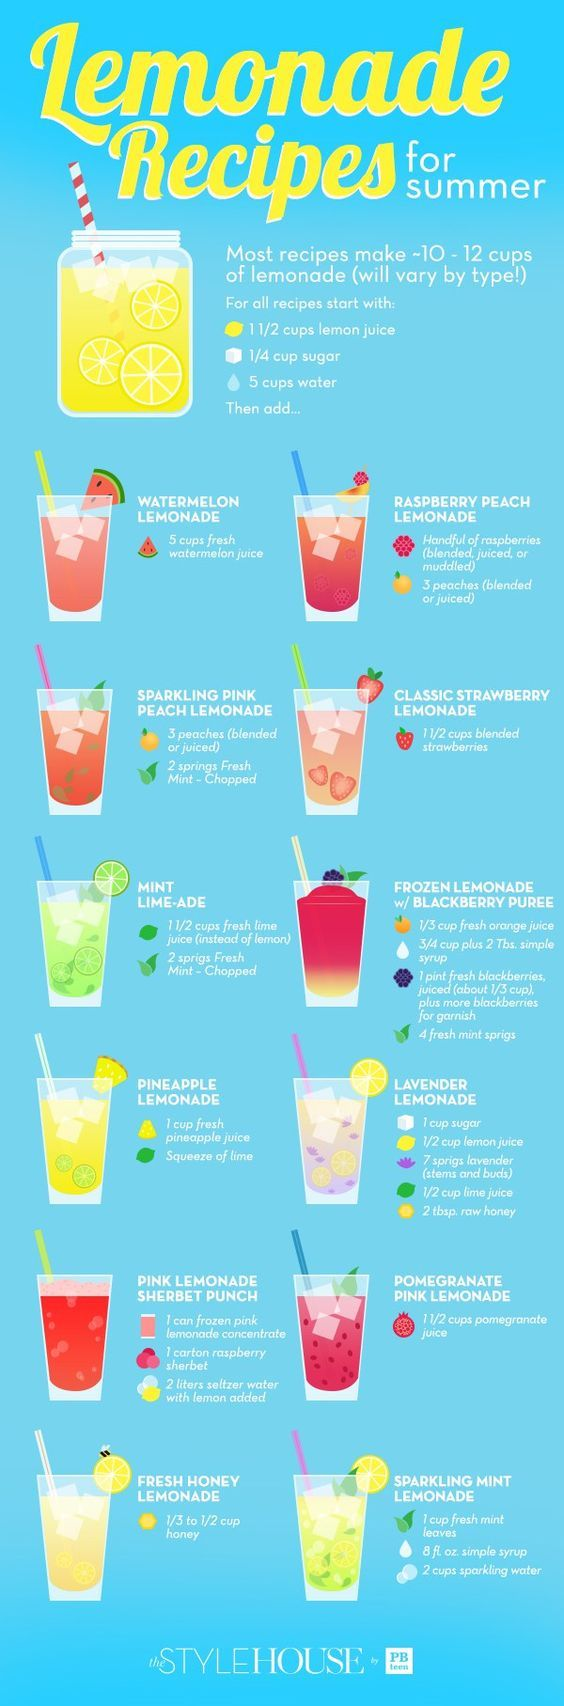 8 Summer Smoothies - Recipes